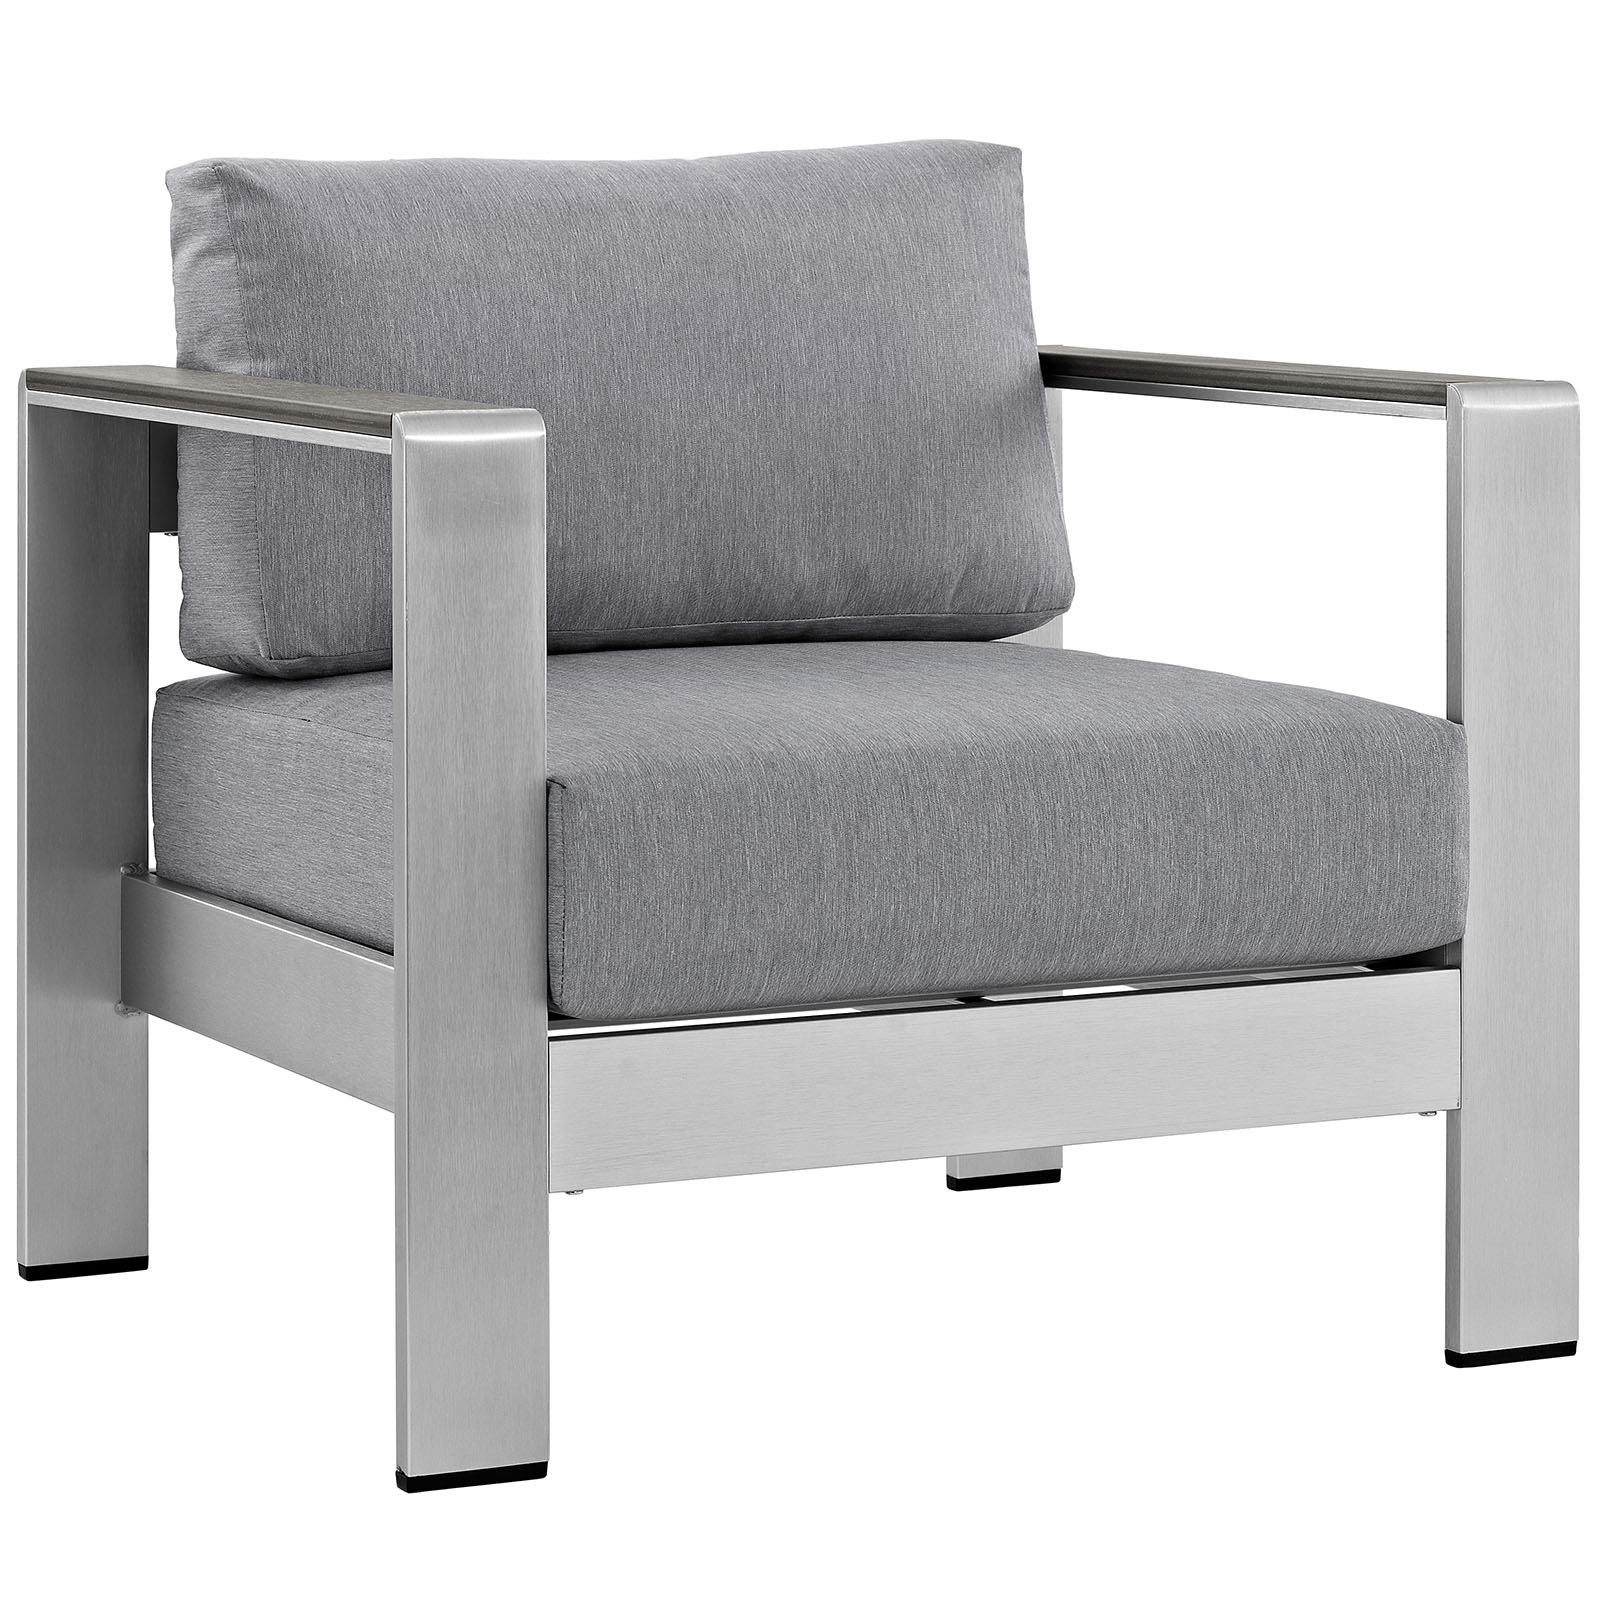 Modern Contemporary Urban Design Outdoor Patio Balcony Lounge Chair, Grey Gray, Metal Aluminum